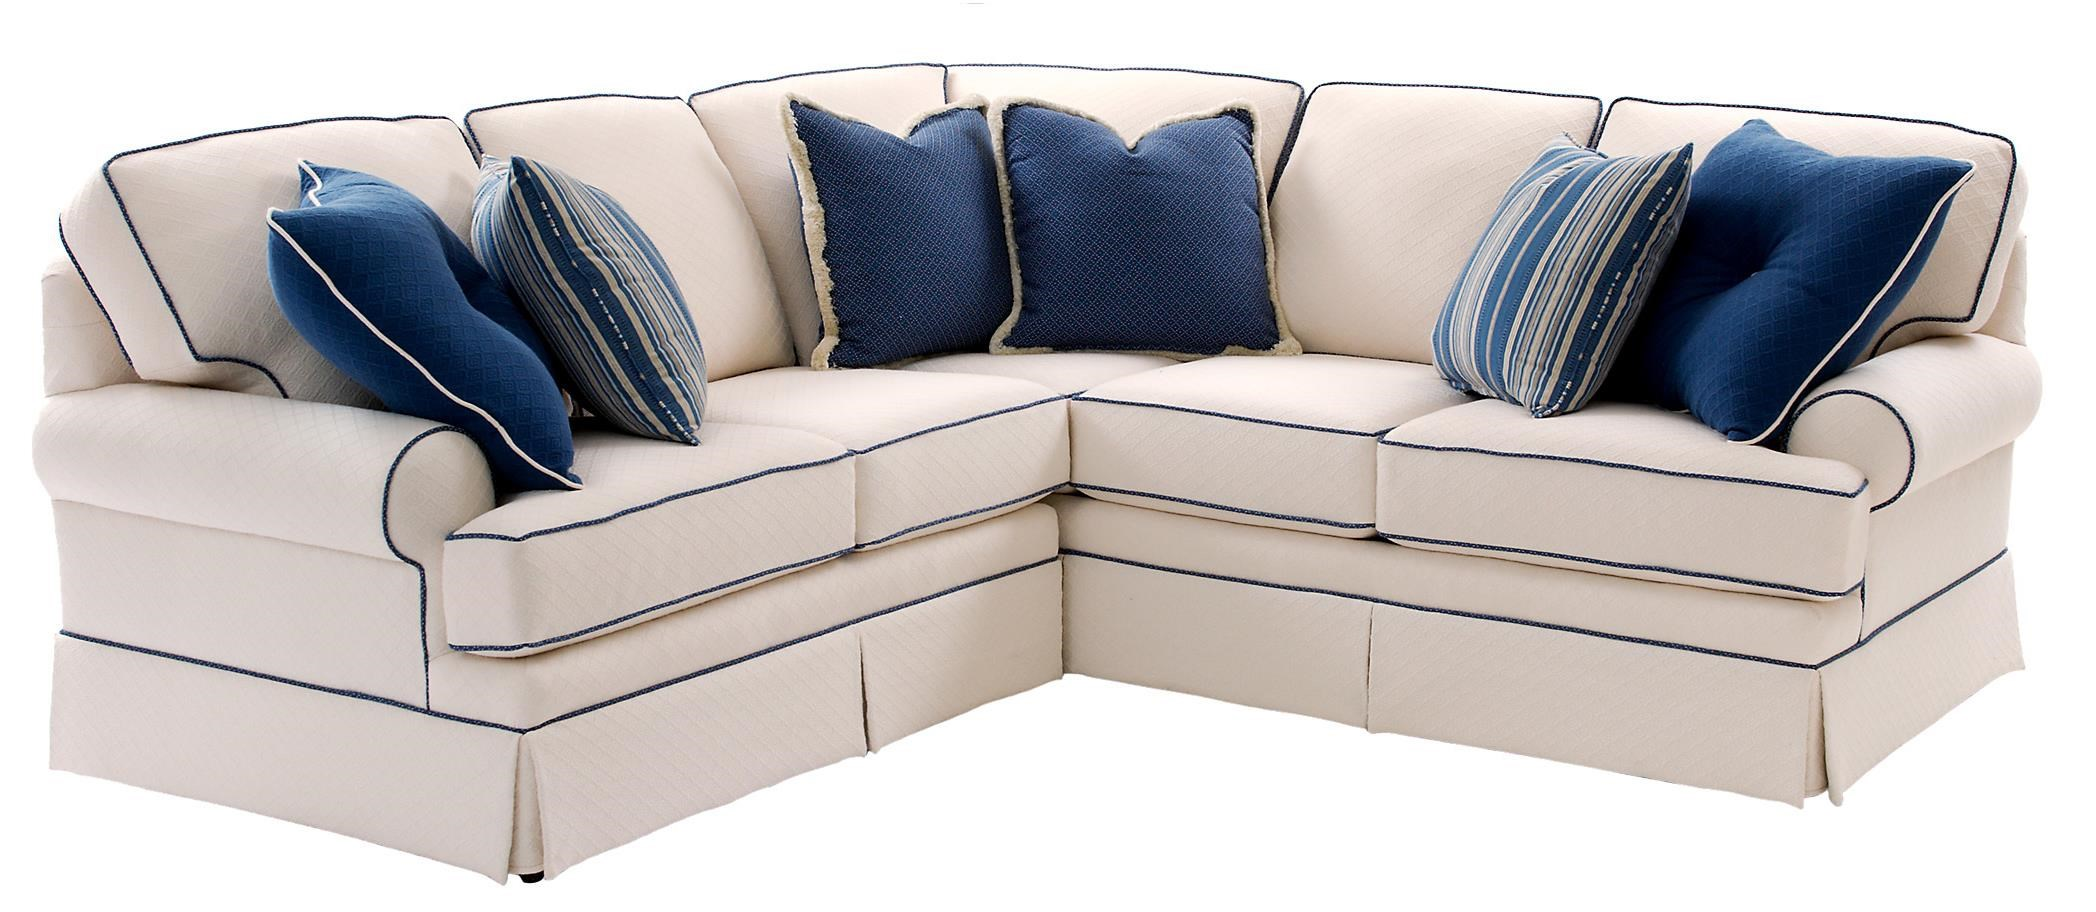 build sectional sofa alex sofalvi smith brothers your own 5000 series with rolled arms and skirt dunk bright furniture sofas